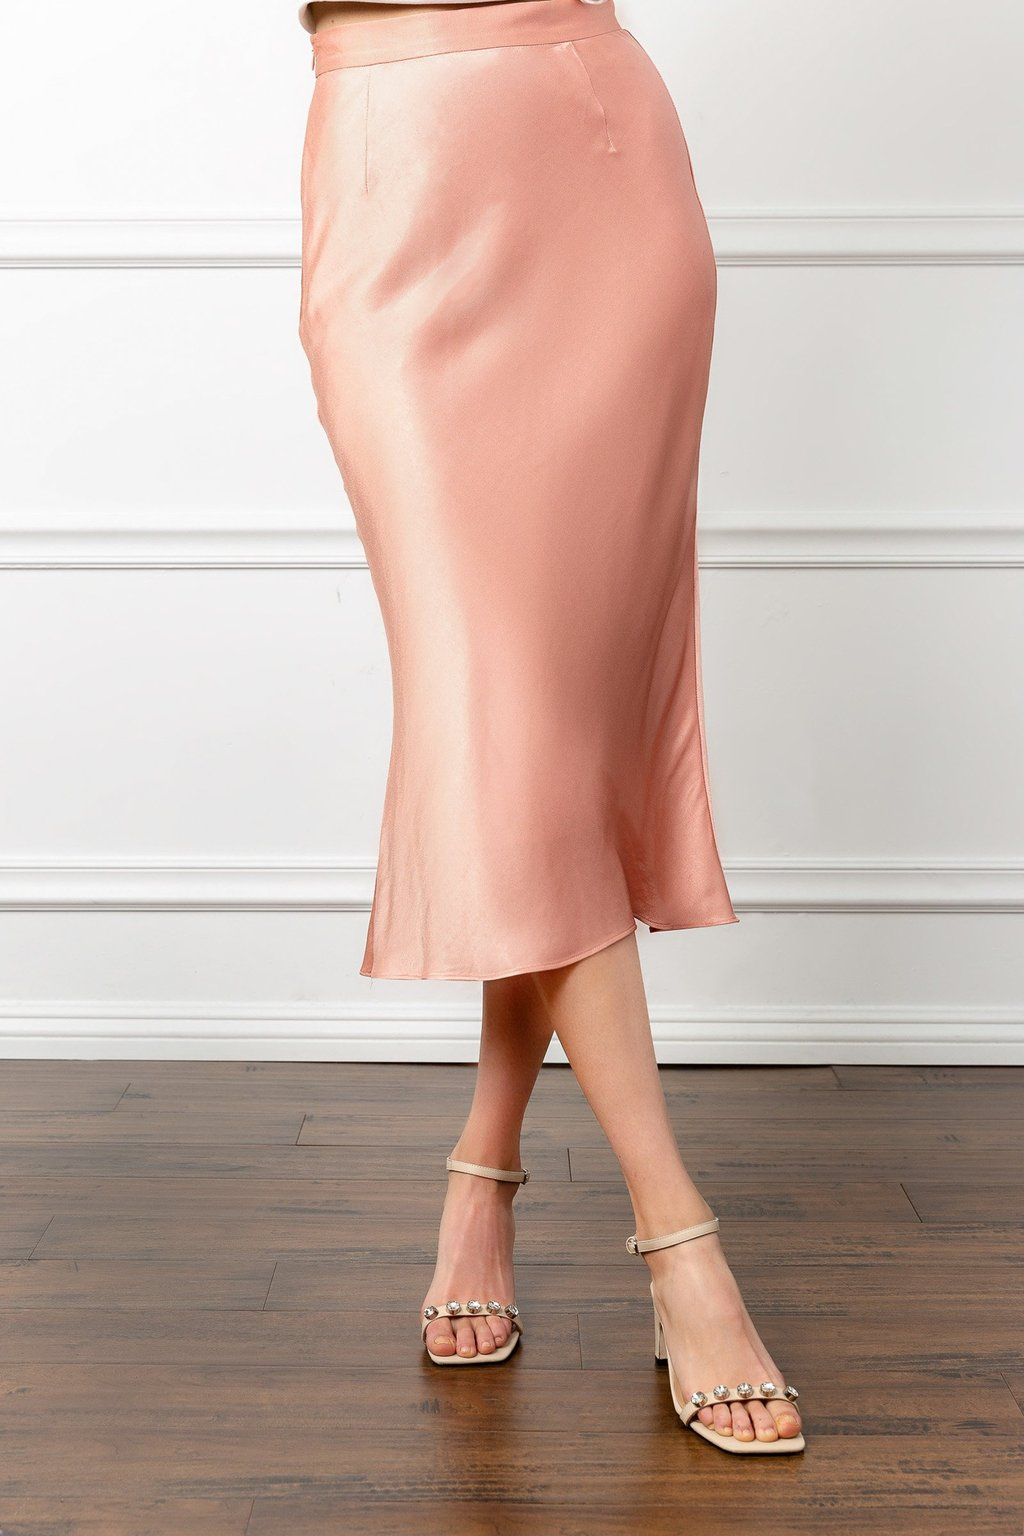 Silky Coral Midi Skirt by J.ING women's clothing